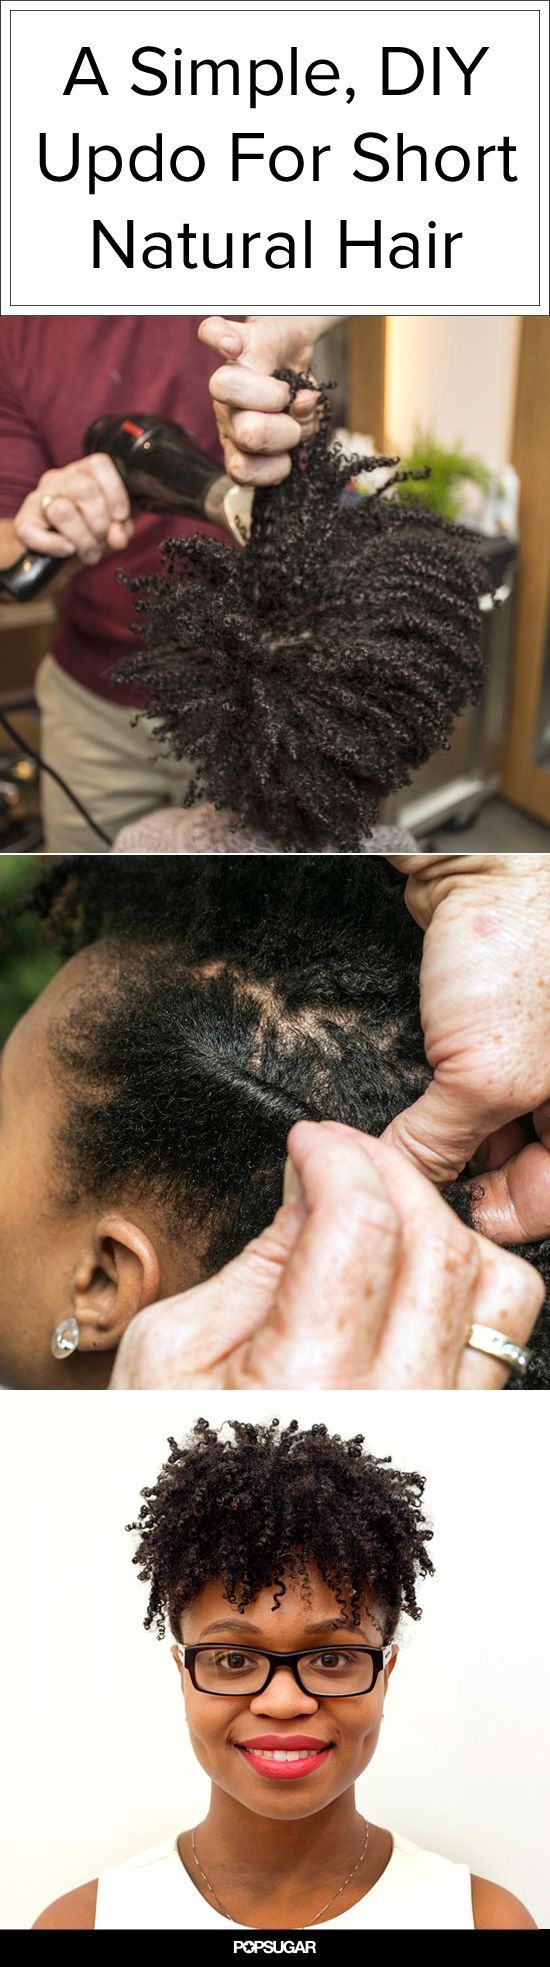 A simple diy updo that works on short natural hair short a simple diy updo that works on short natural hair solutioingenieria Choice Image